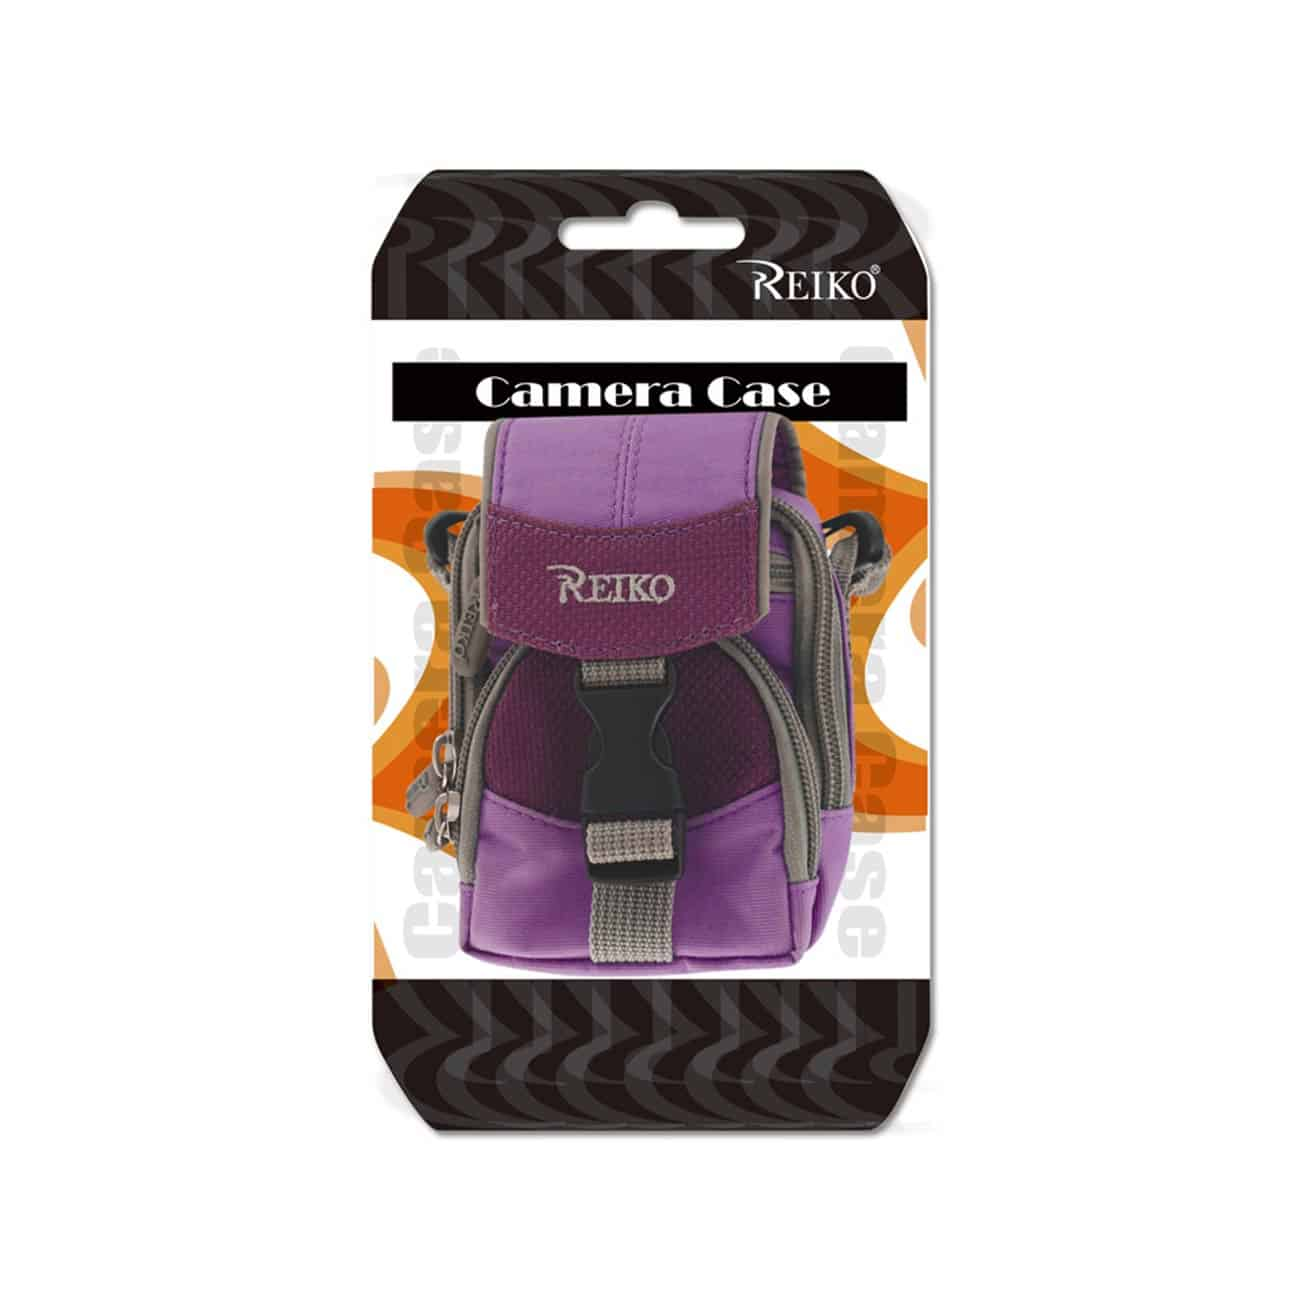 SMALL CARRYING CAMERA CASE S SIZE INCHES IN PURPLE